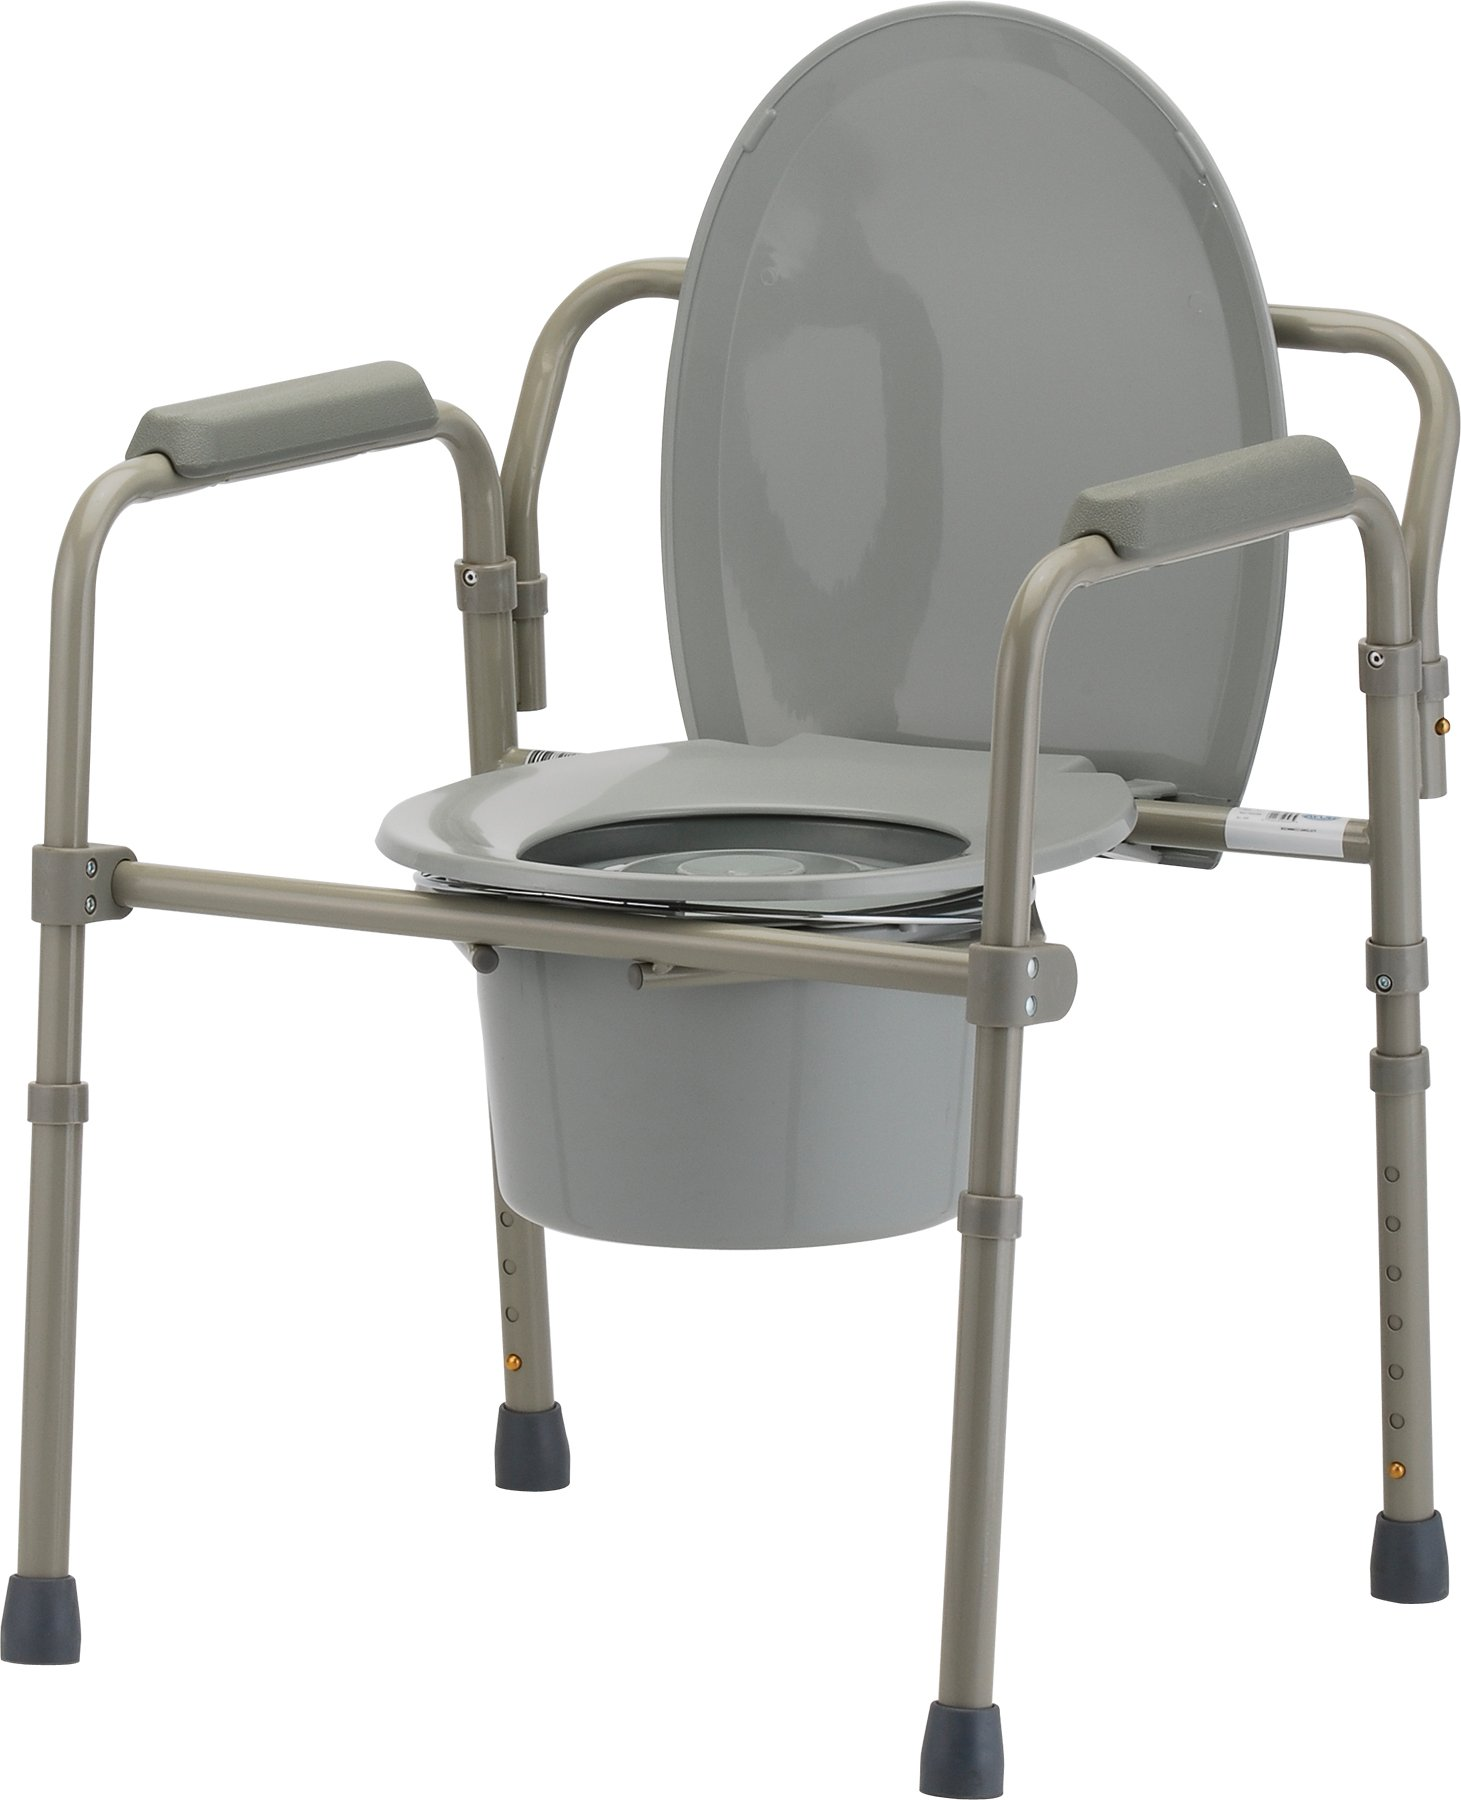 NOVA Folding Commode, Over Toilet and Bedside Commode, Comes with Splash Guard/Bucket/Lid by NOVA Medical Products